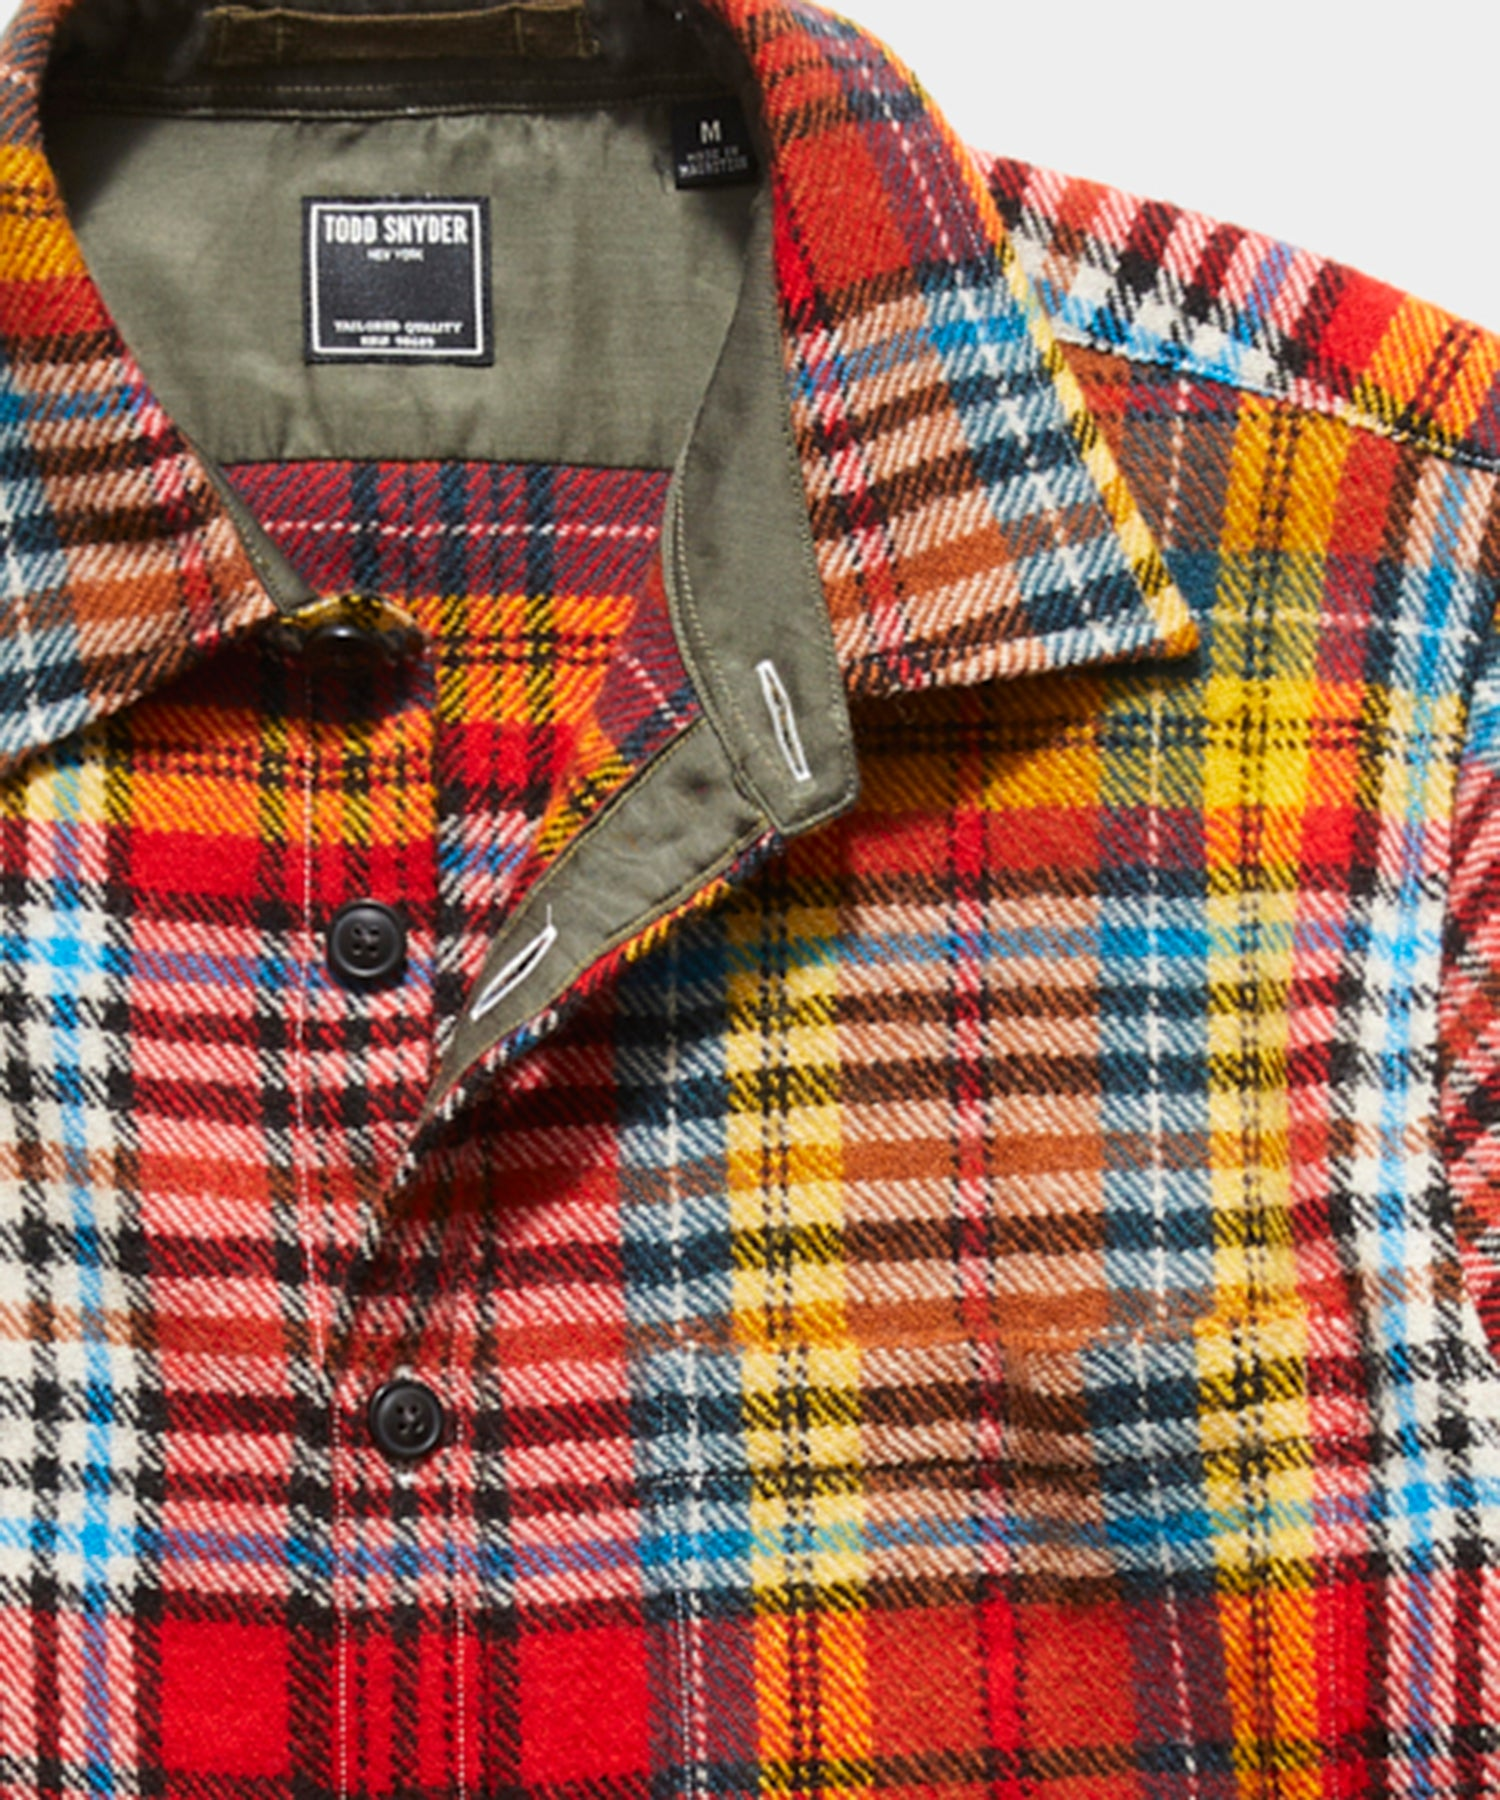 Italian Suede Elbow Patch Shirt Jacket in Red Plaid